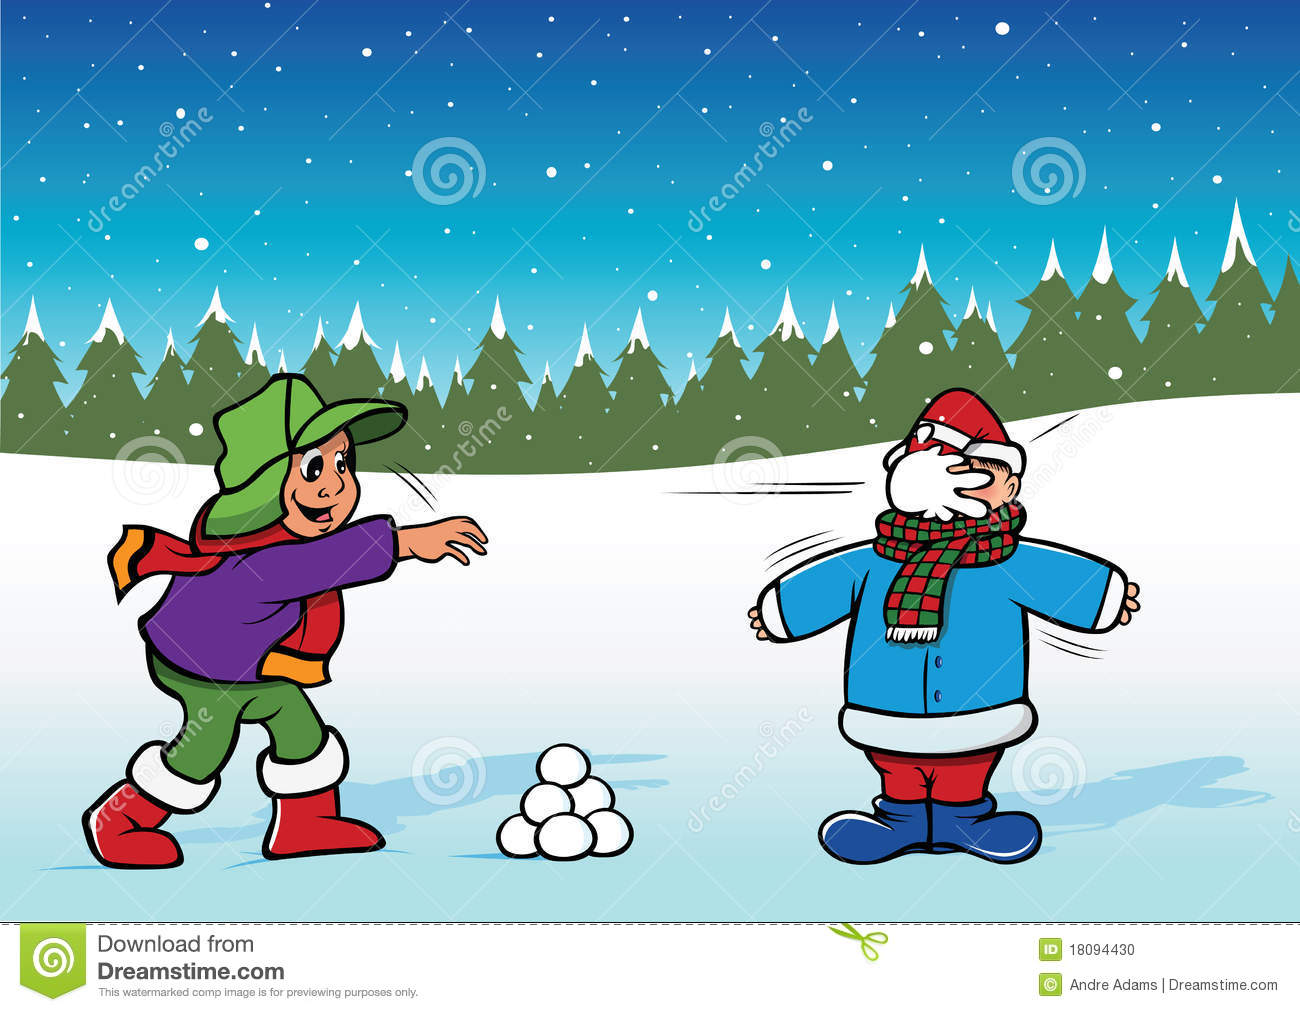 Snowball Fight Stock Photo - Image: 18094430